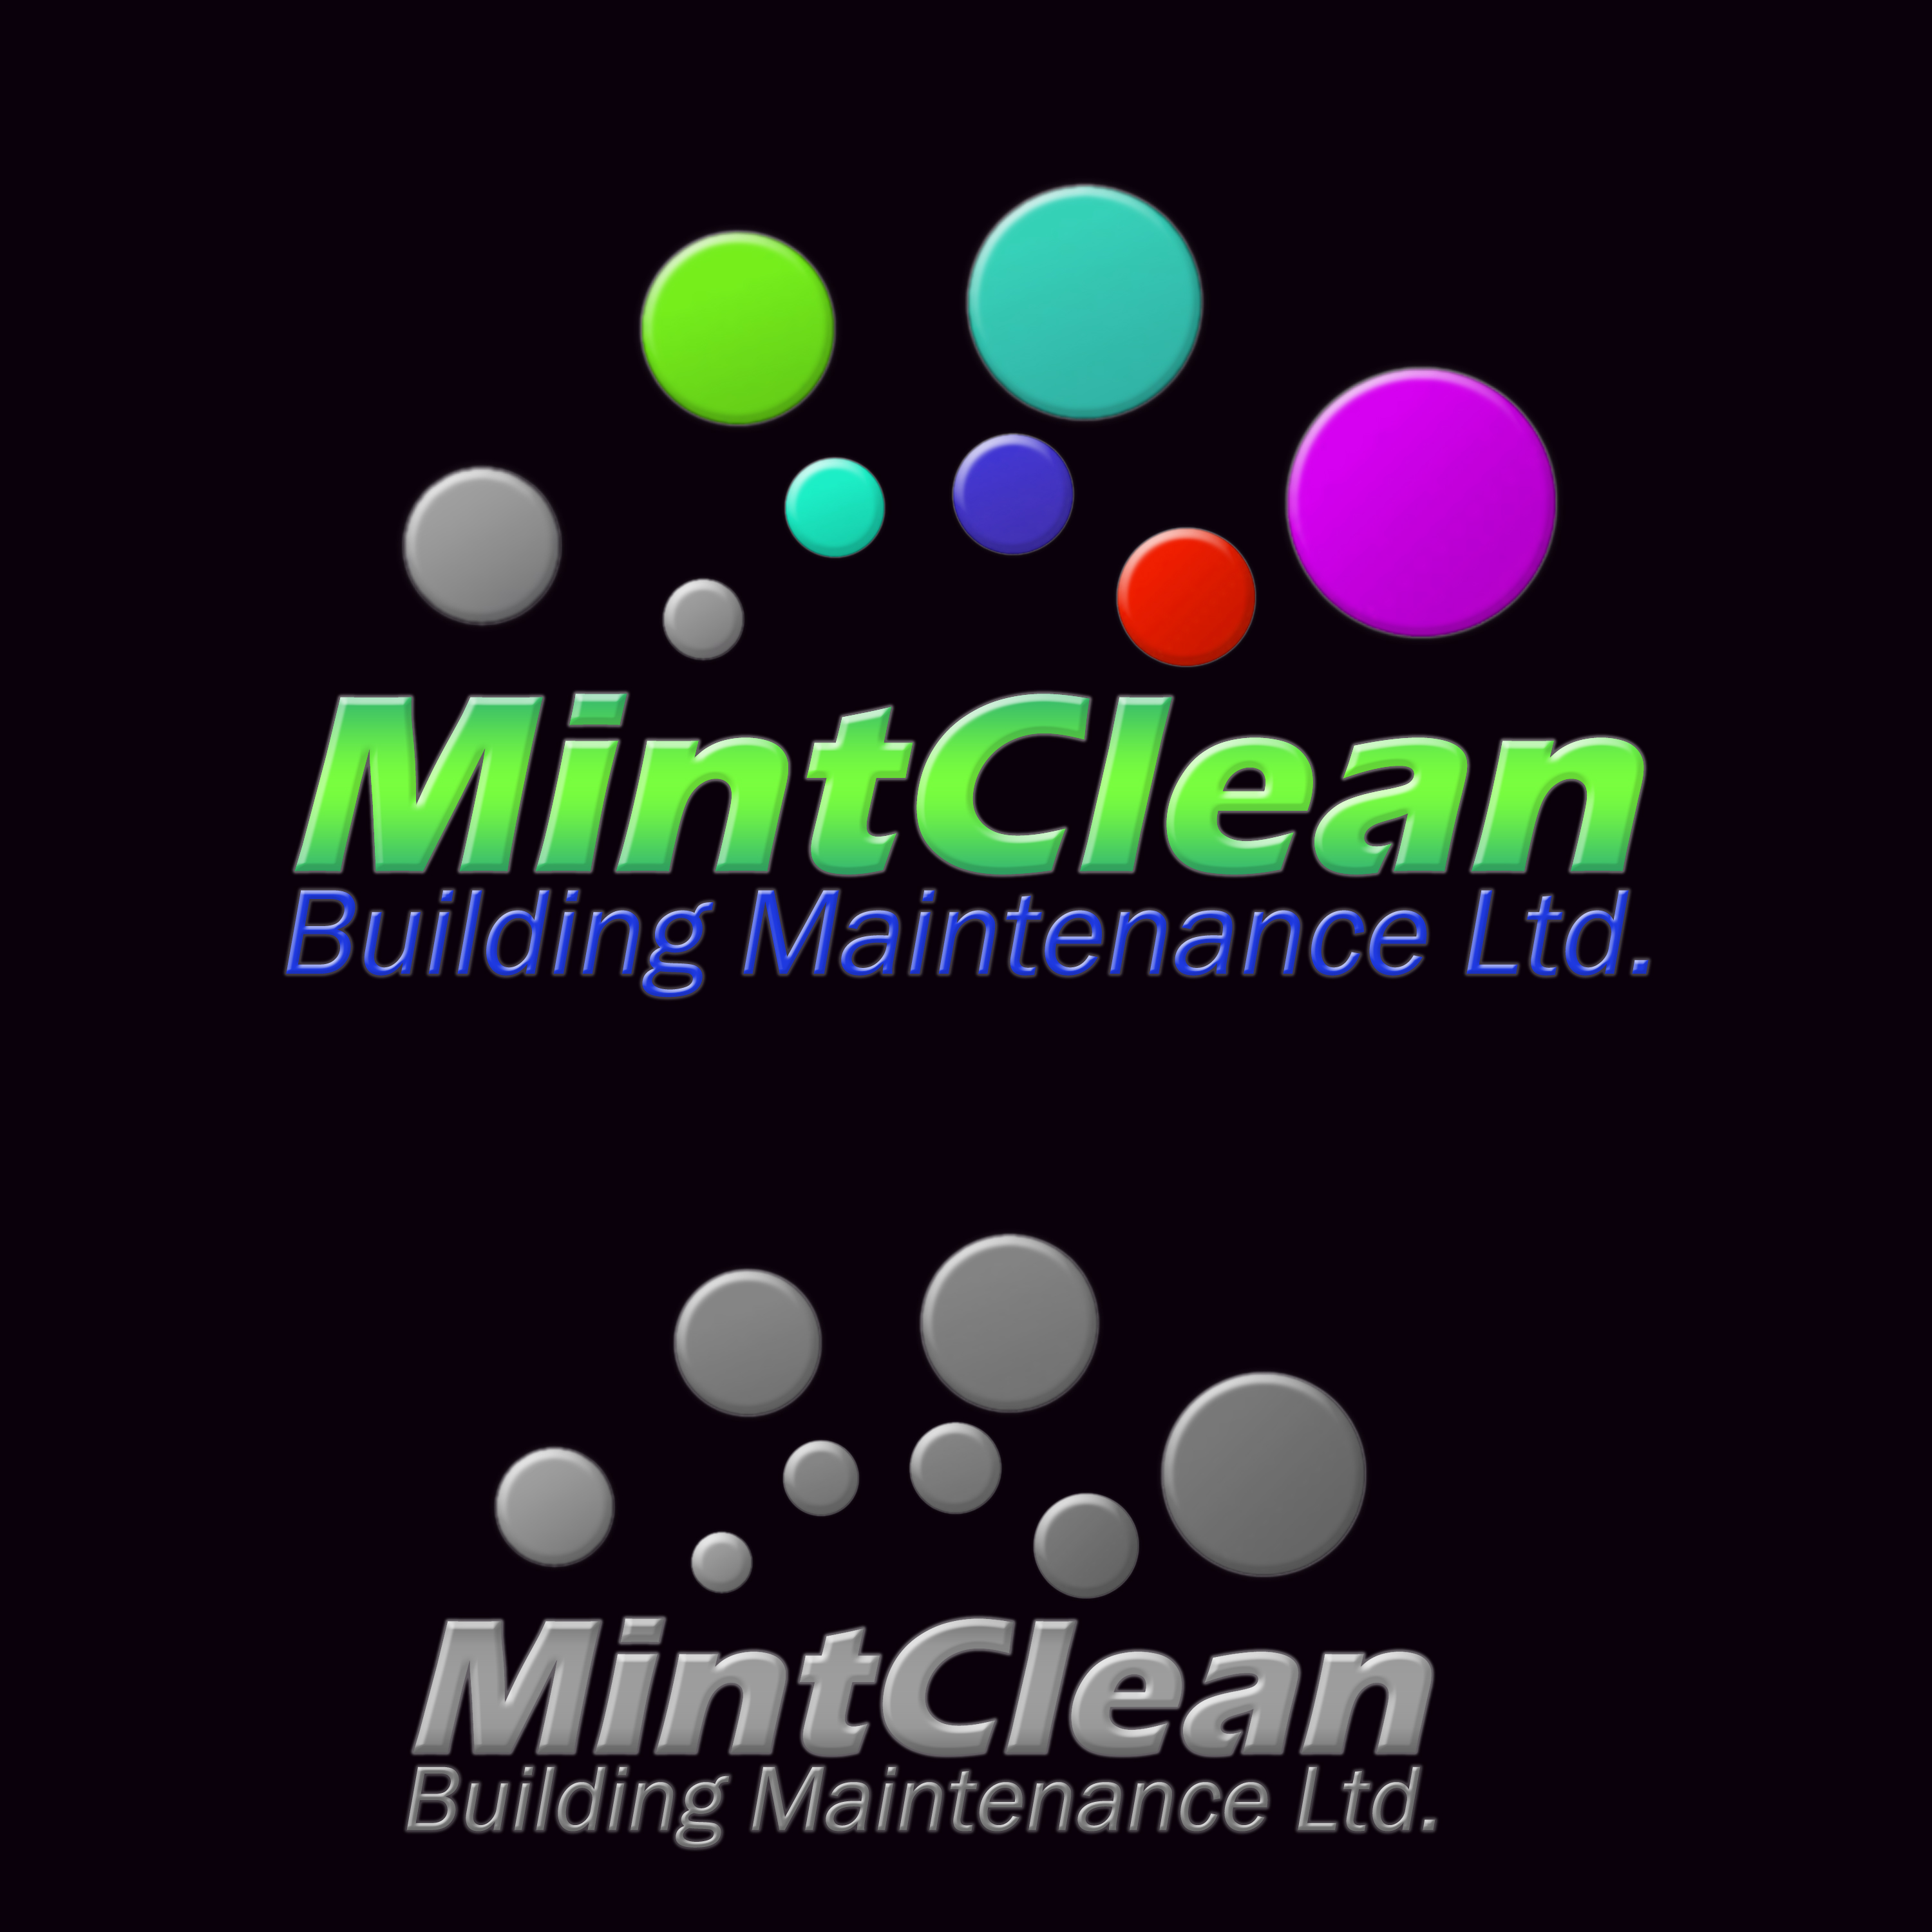 Logo Design by Roberto Sibbaluca - Entry No. 46 in the Logo Design Contest MintClean Building Maintenance Ltd. Logo Design.